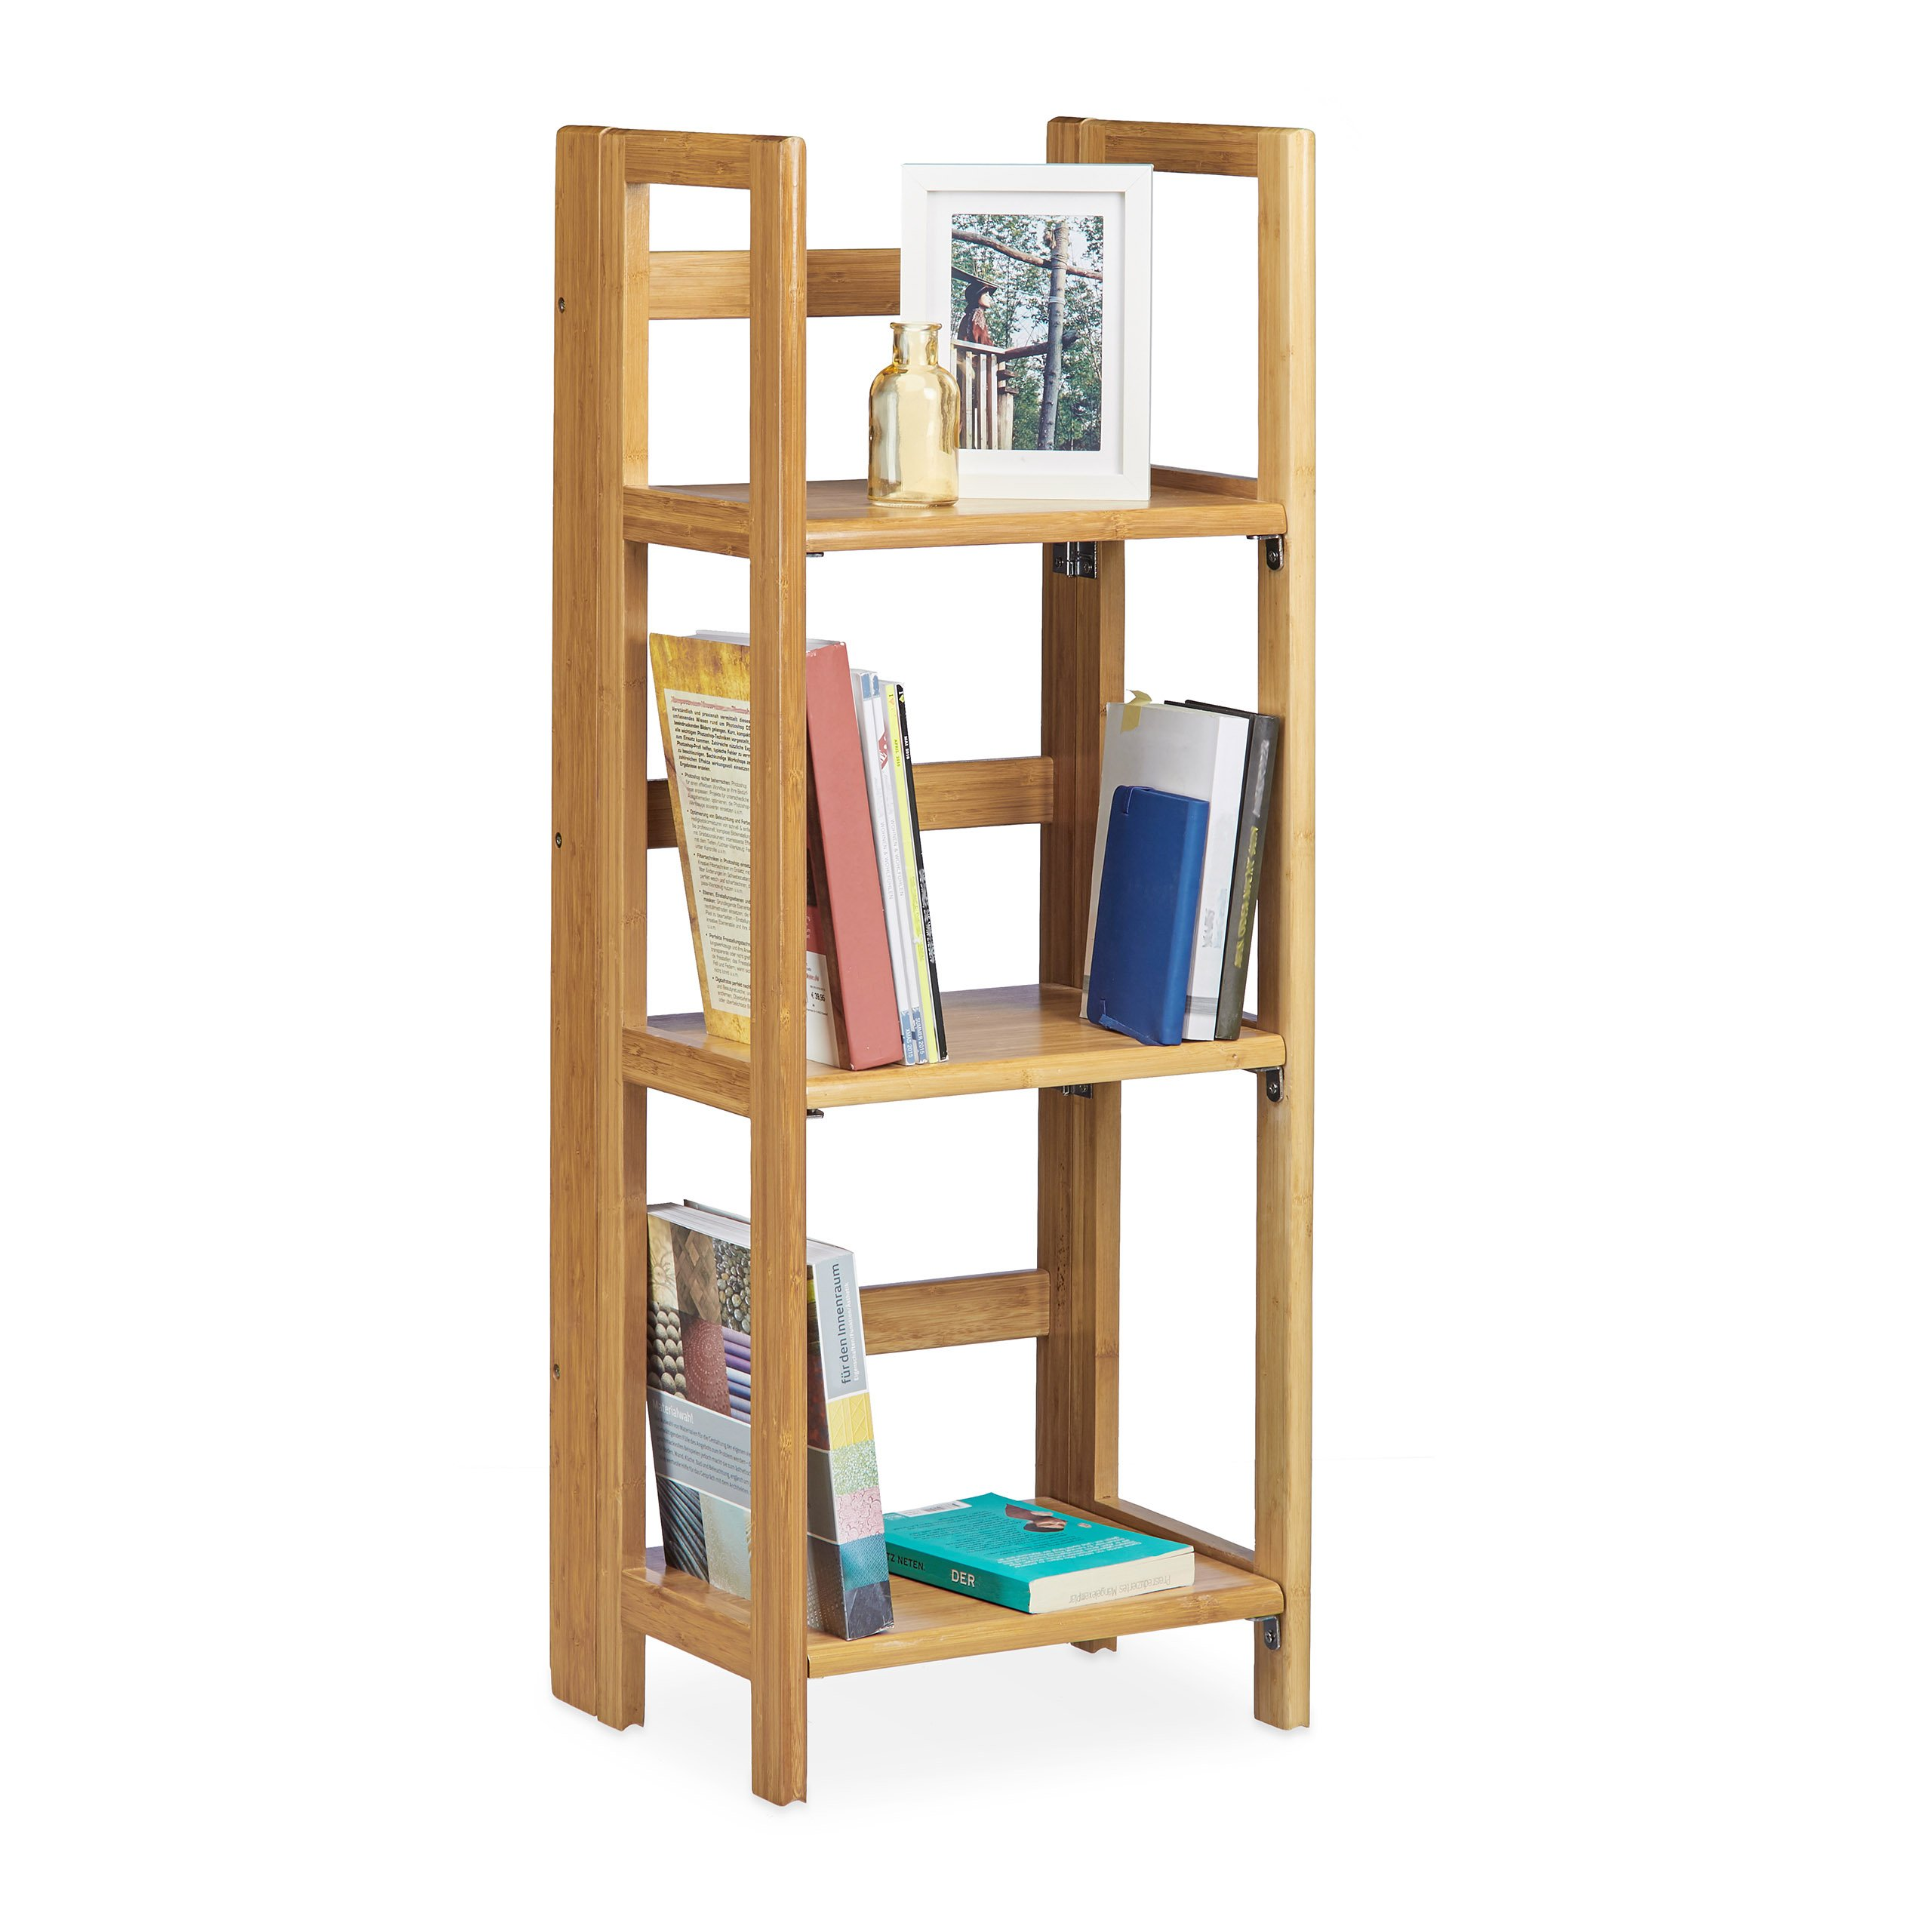 walmart awesome stunning interesting won w engaging with size staples ft free front barrister full area of target bookcases and satisfying folding shipping unusual lamp stackable table white black uncategorized foot bookcase wide top bookshelf glass rug